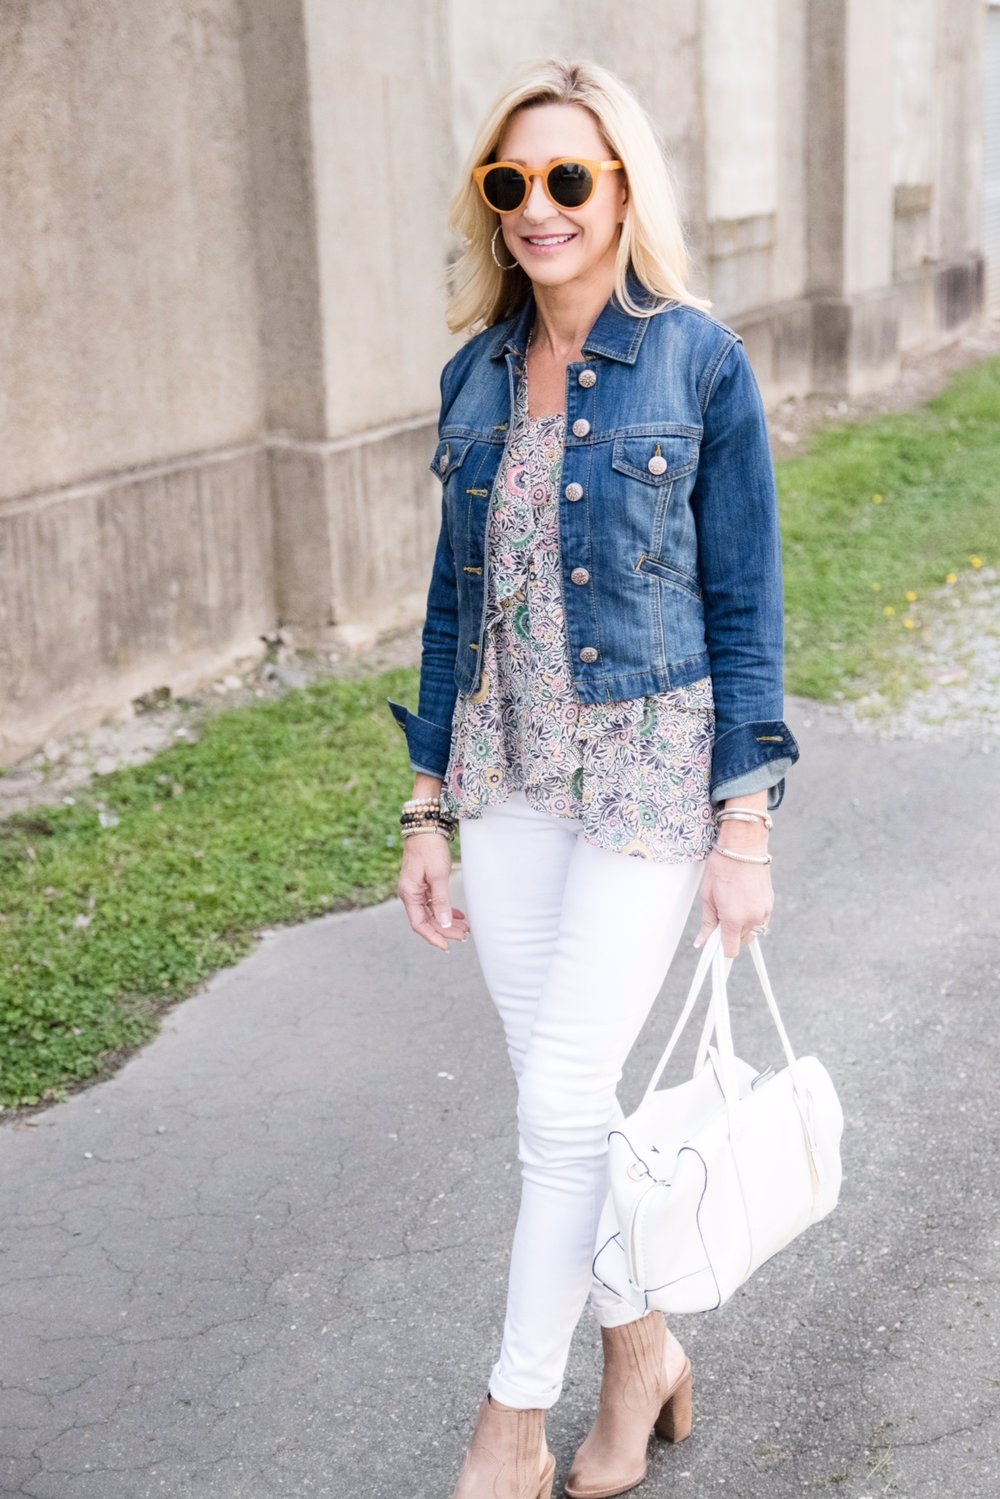 Spring Outfit Idea - Cabi top and jacket with Vera Bradley bag